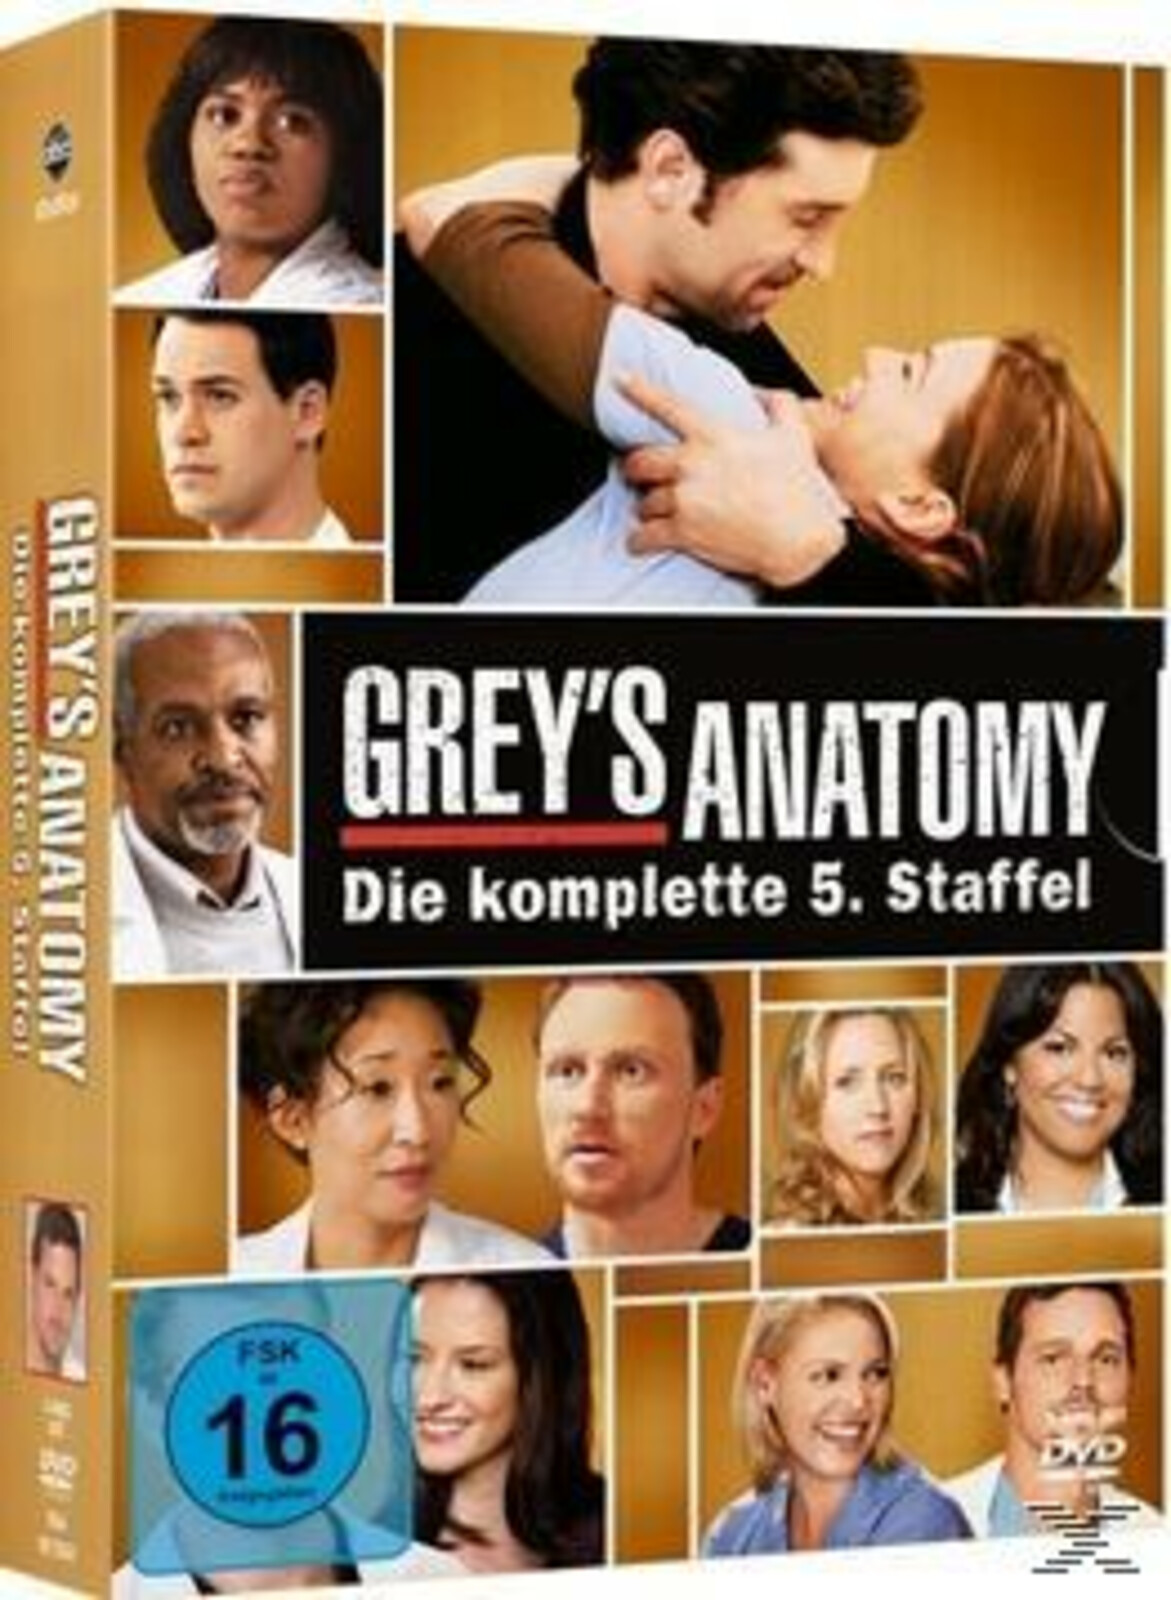 Grey\'s Anatomy - Staffel 5 - (DVD) | eBay